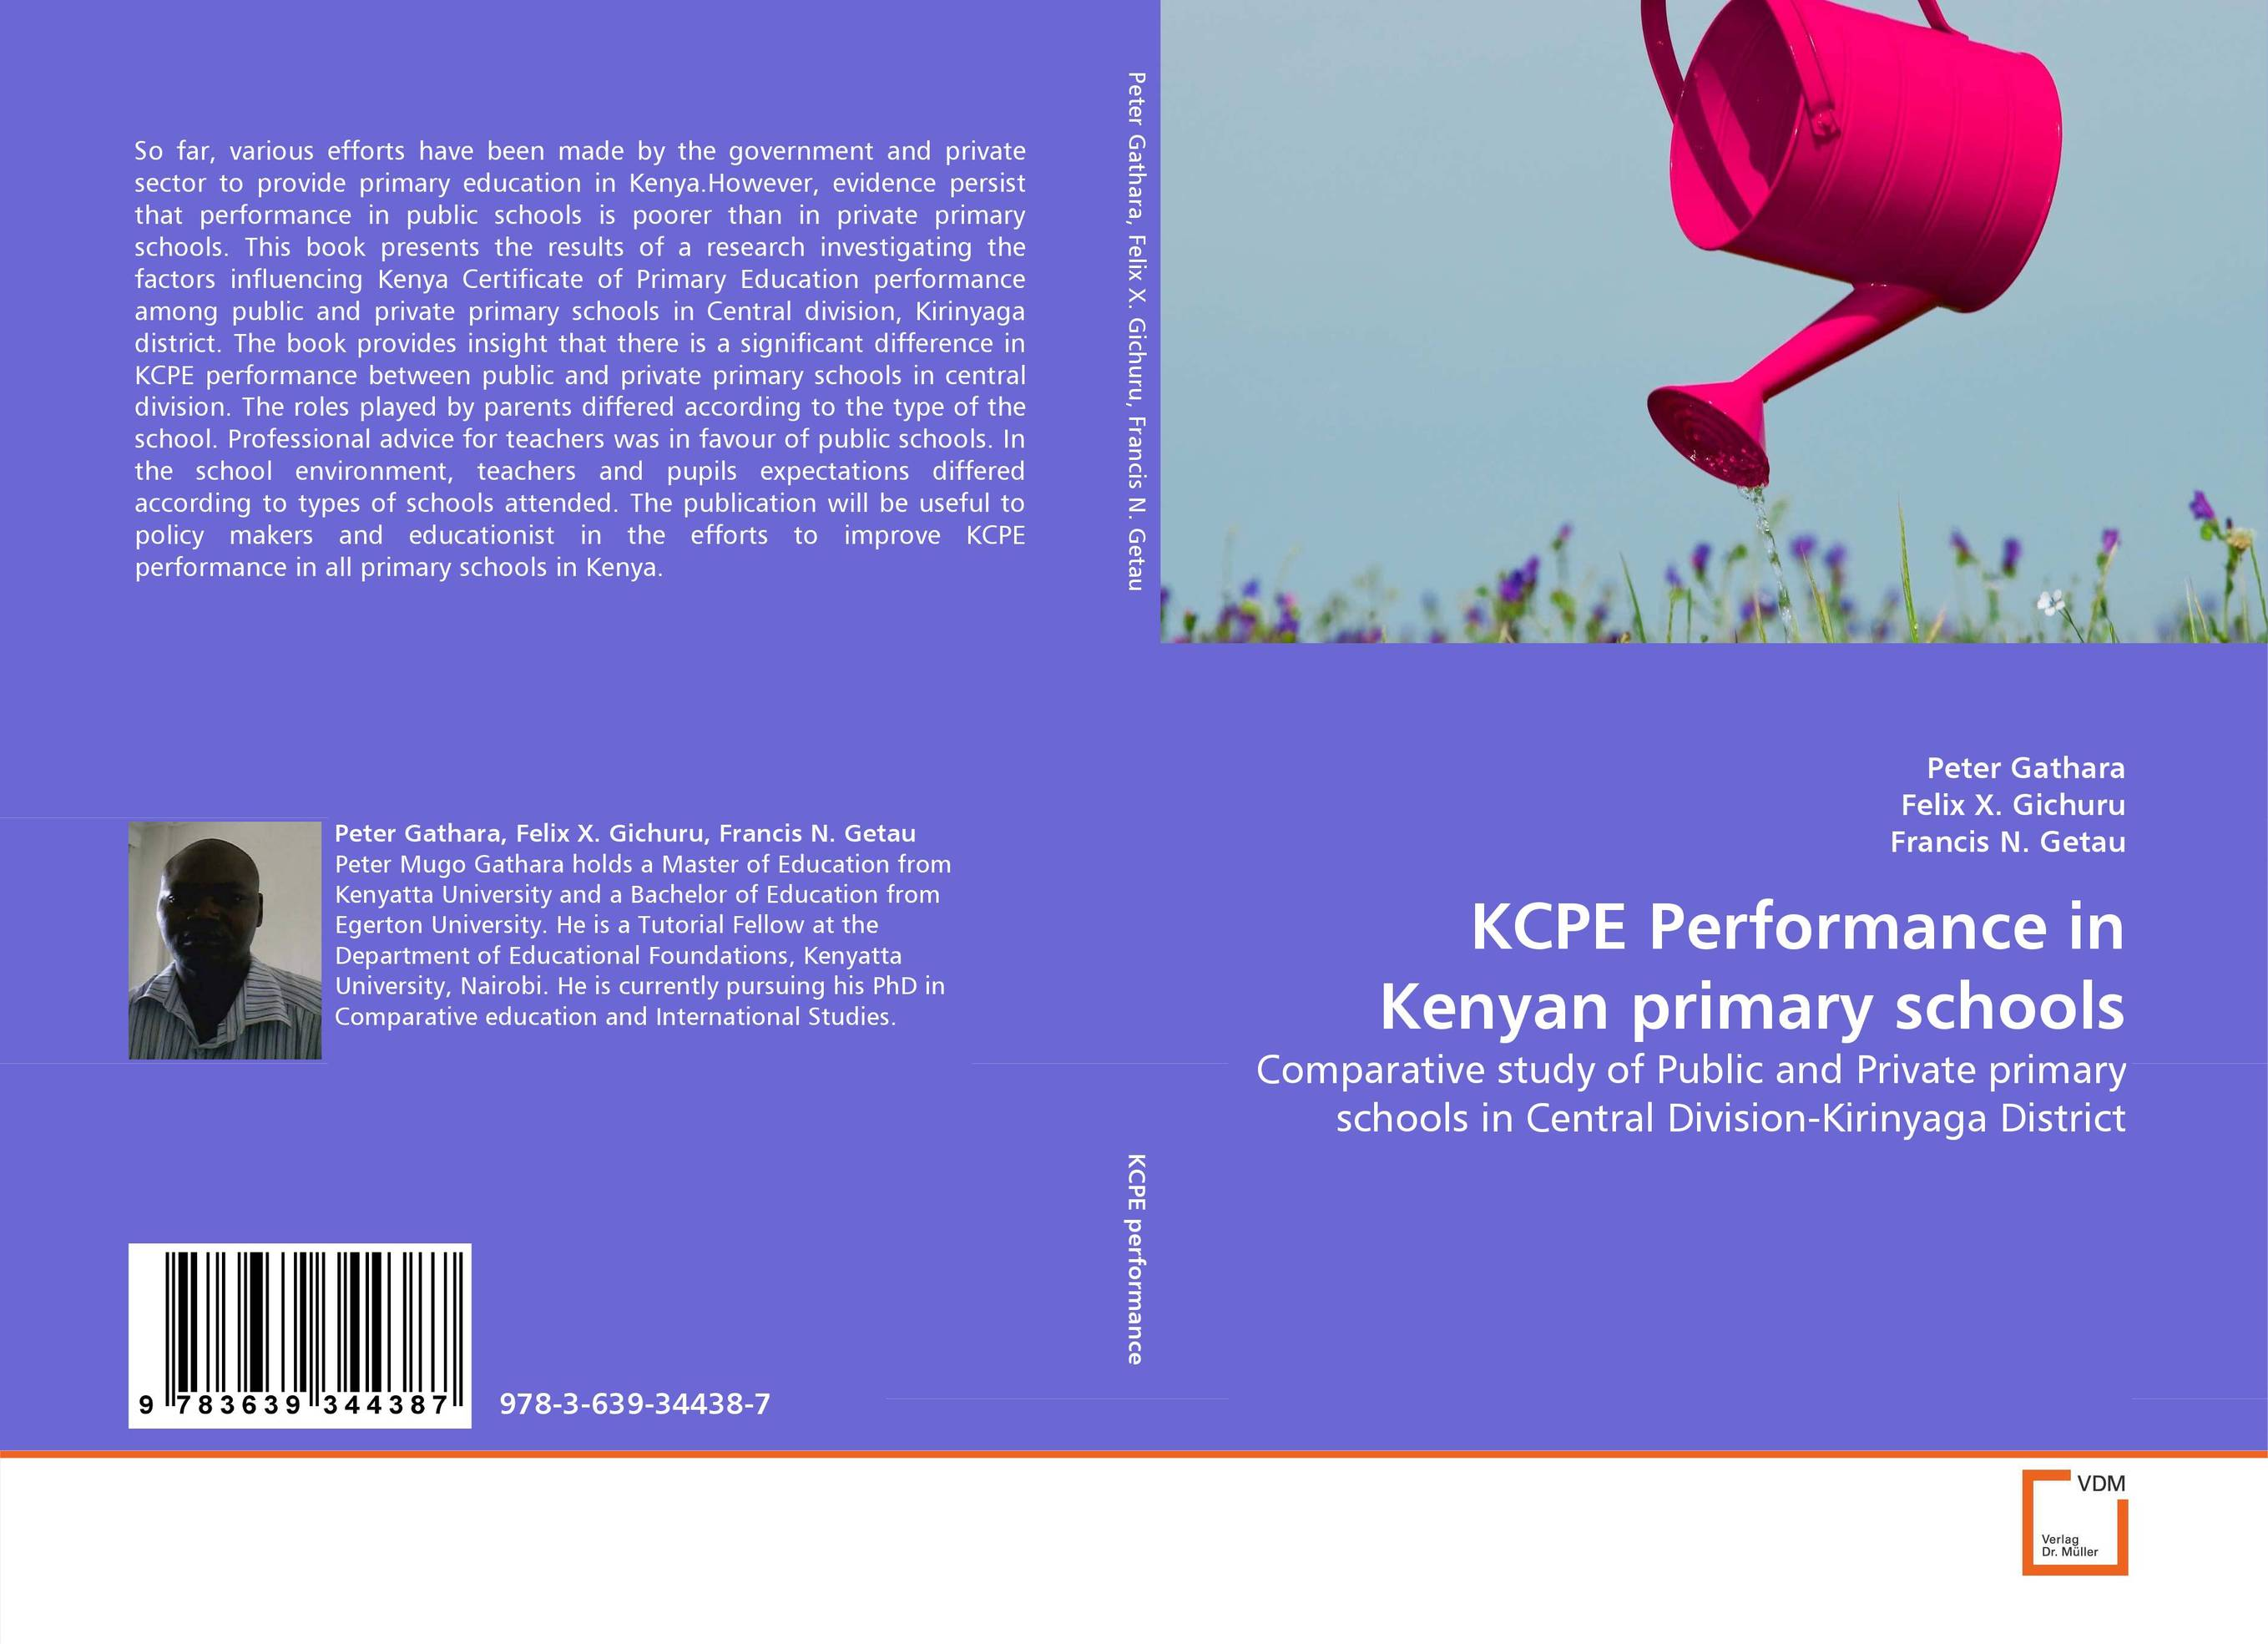 KCPE Performance in Kenyan primary schools factors influencing girls performance in tanzanian community schools